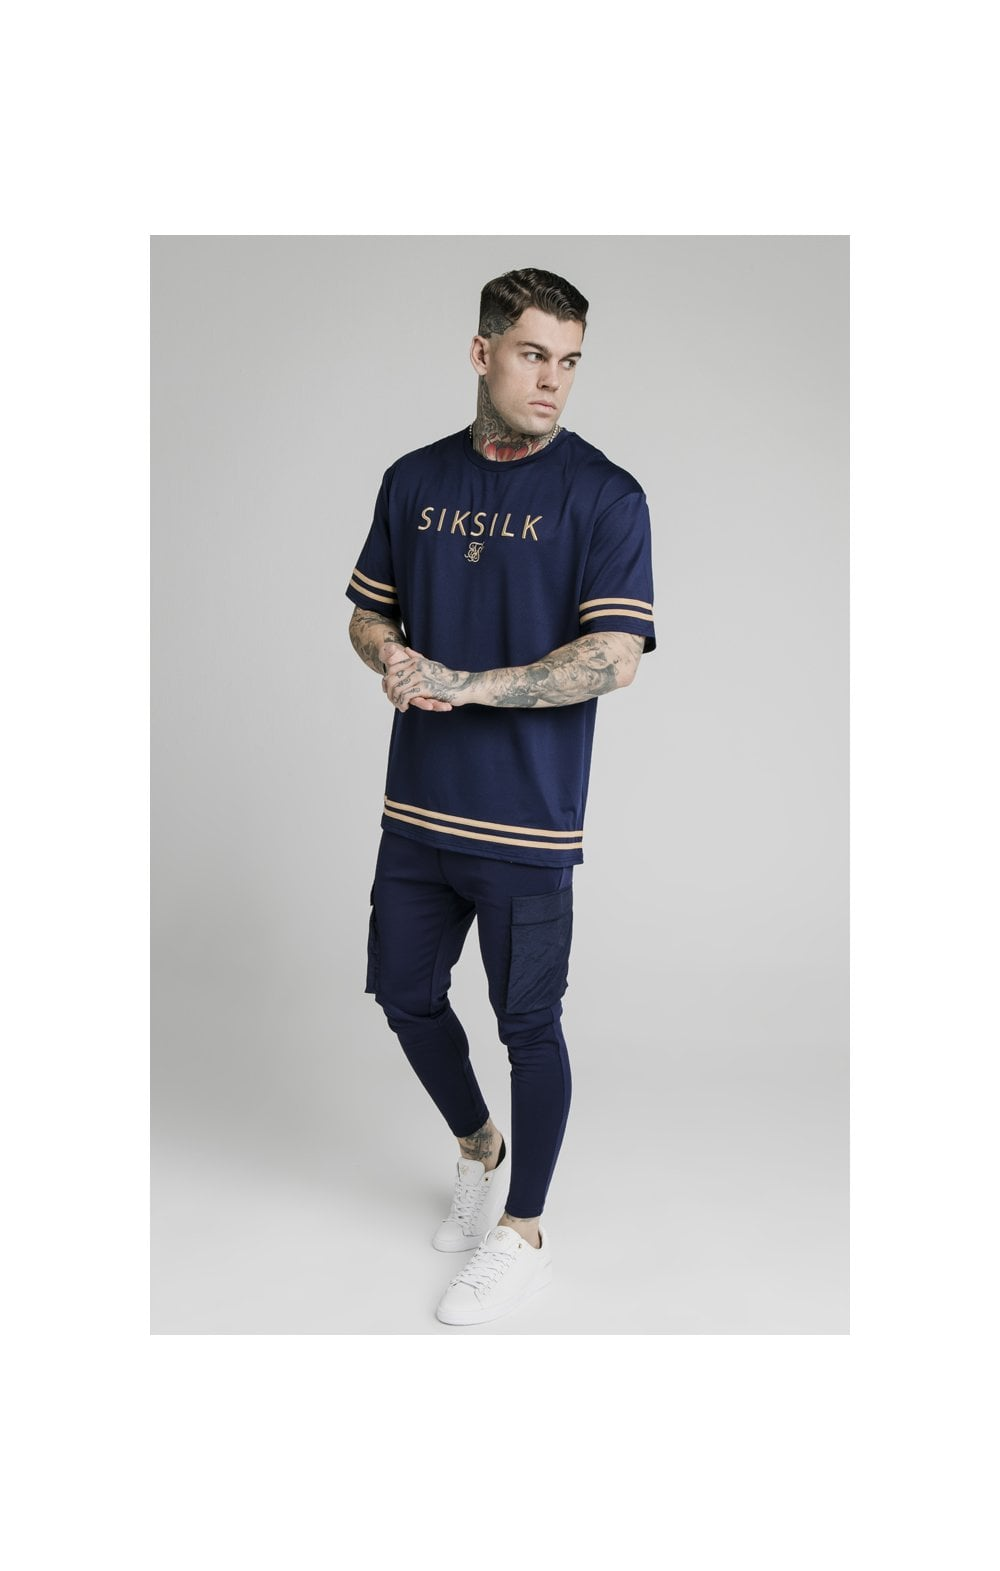 SikSilk S/S Essential Tee - Navy Eclipse (2)